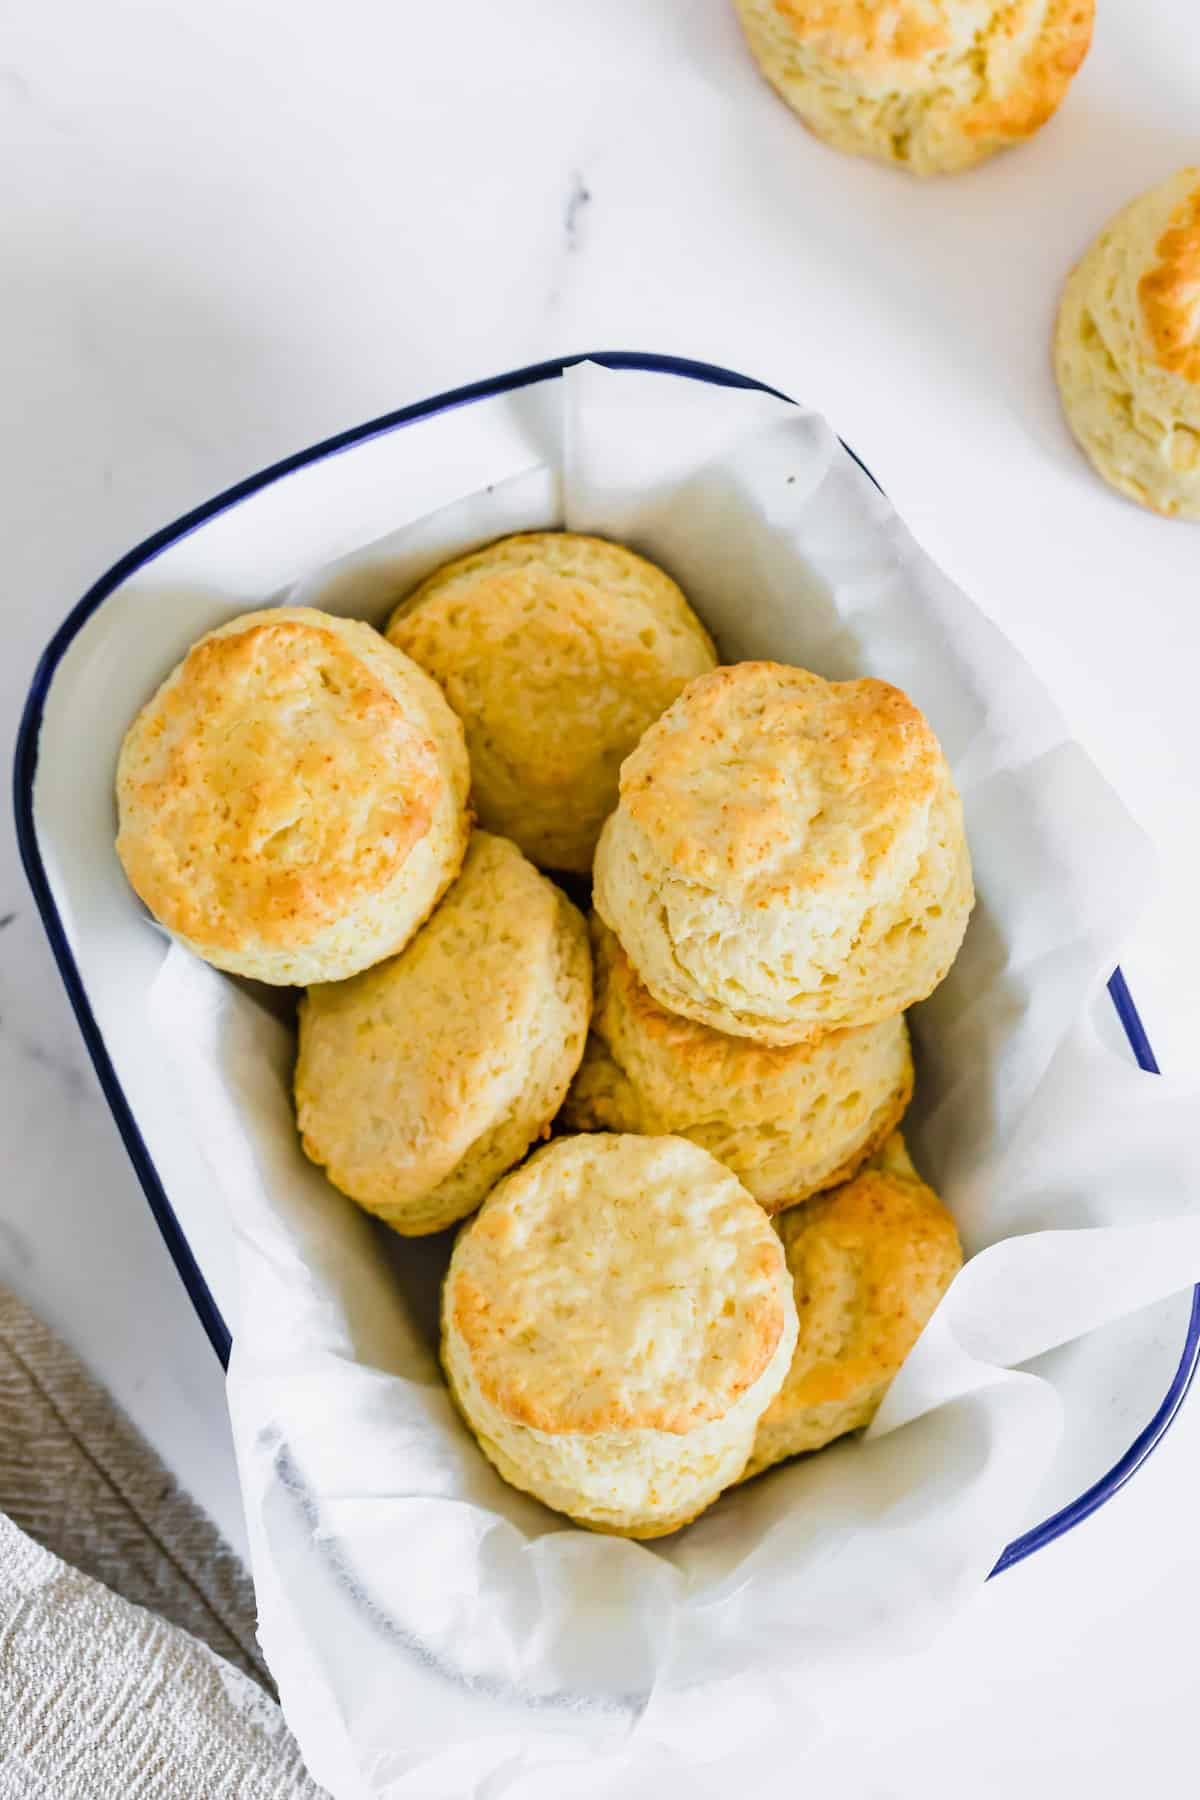 A Blue-Rimmed Serving Dish Full of Homemade Gluten-free Sweet Biscuits